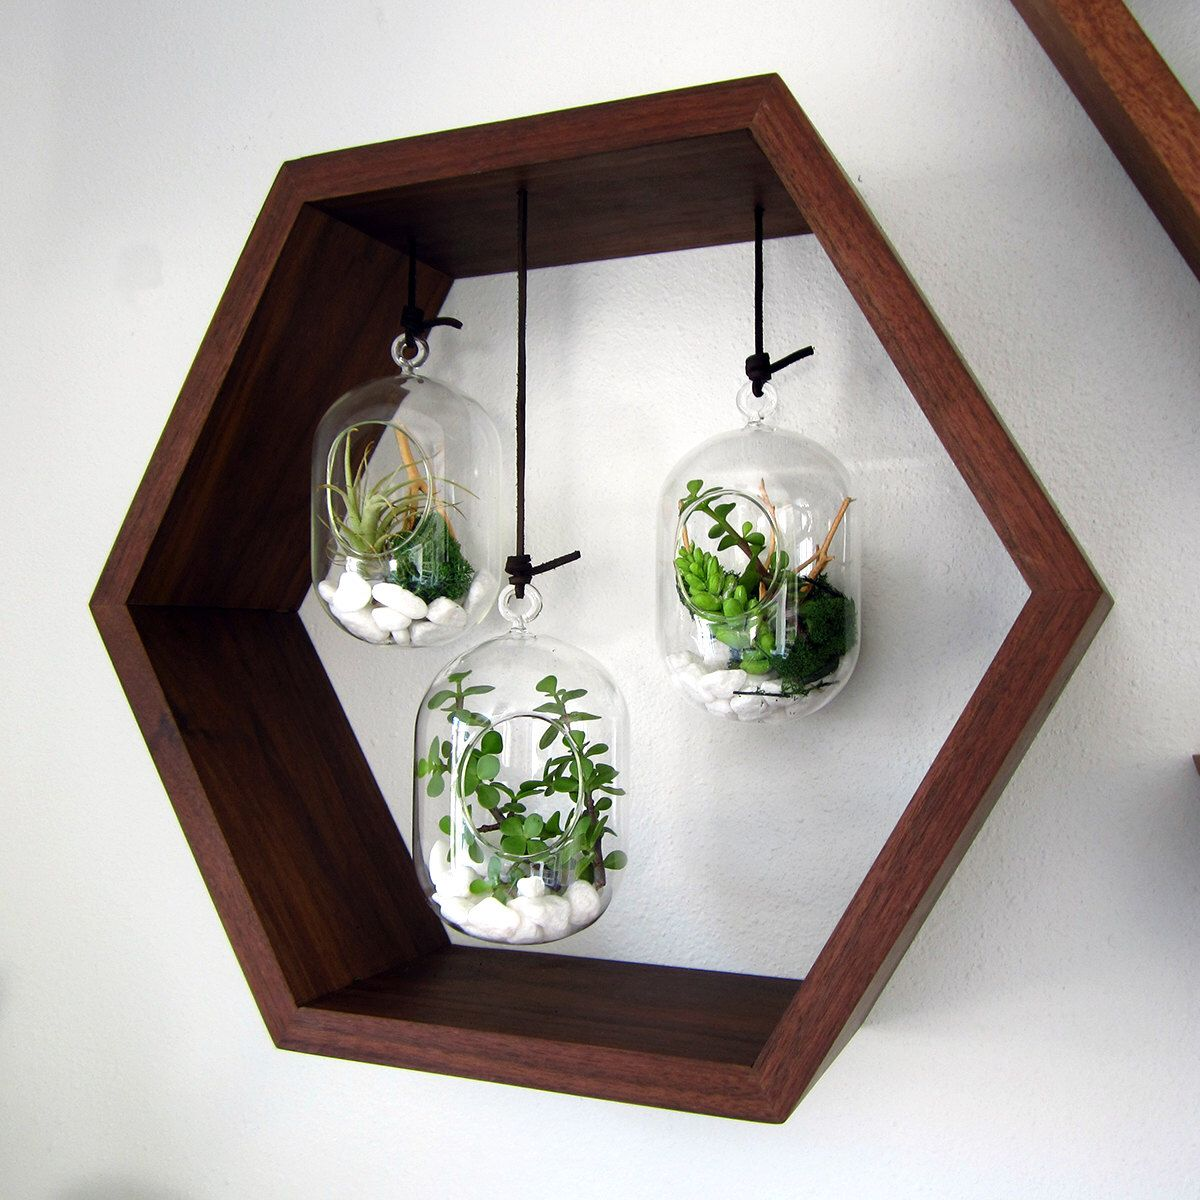 Plant Shelves For Walls Pin By Petah Macfarlane On Tort To Make Home Decor